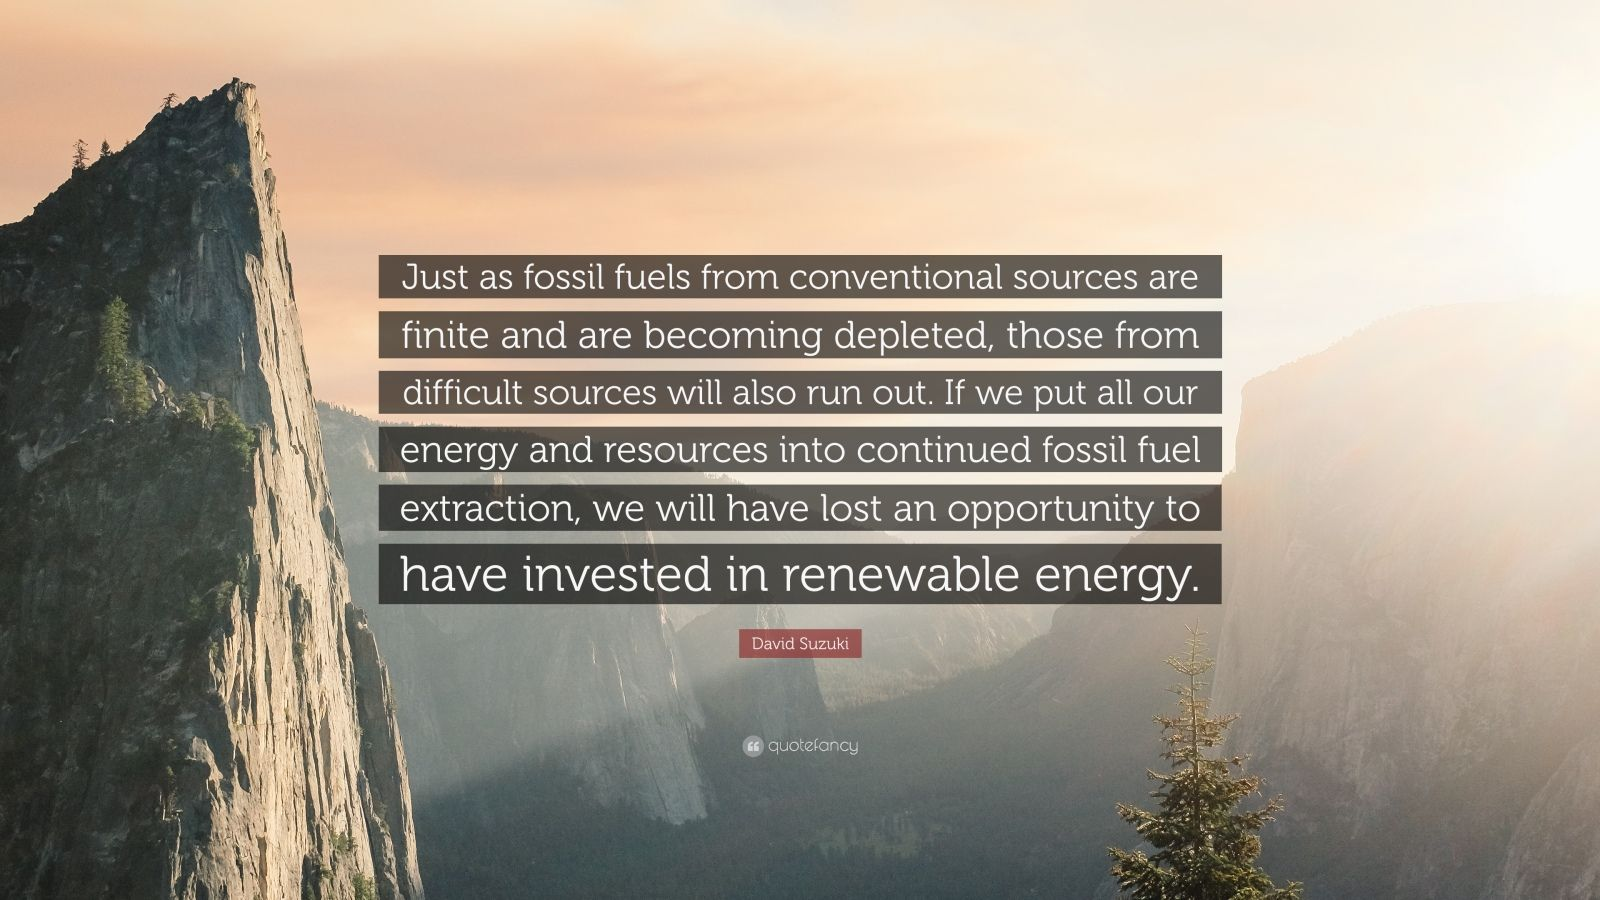 """David Suzuki Quote: """"Just as fossil fuels from conventional sources are finite and are becoming depleted, those from difficult sources will also run out. If we put all our energy and resources into continued fossil fuel extraction, we will have lost an opportunity to have invested in renewable energy."""""""